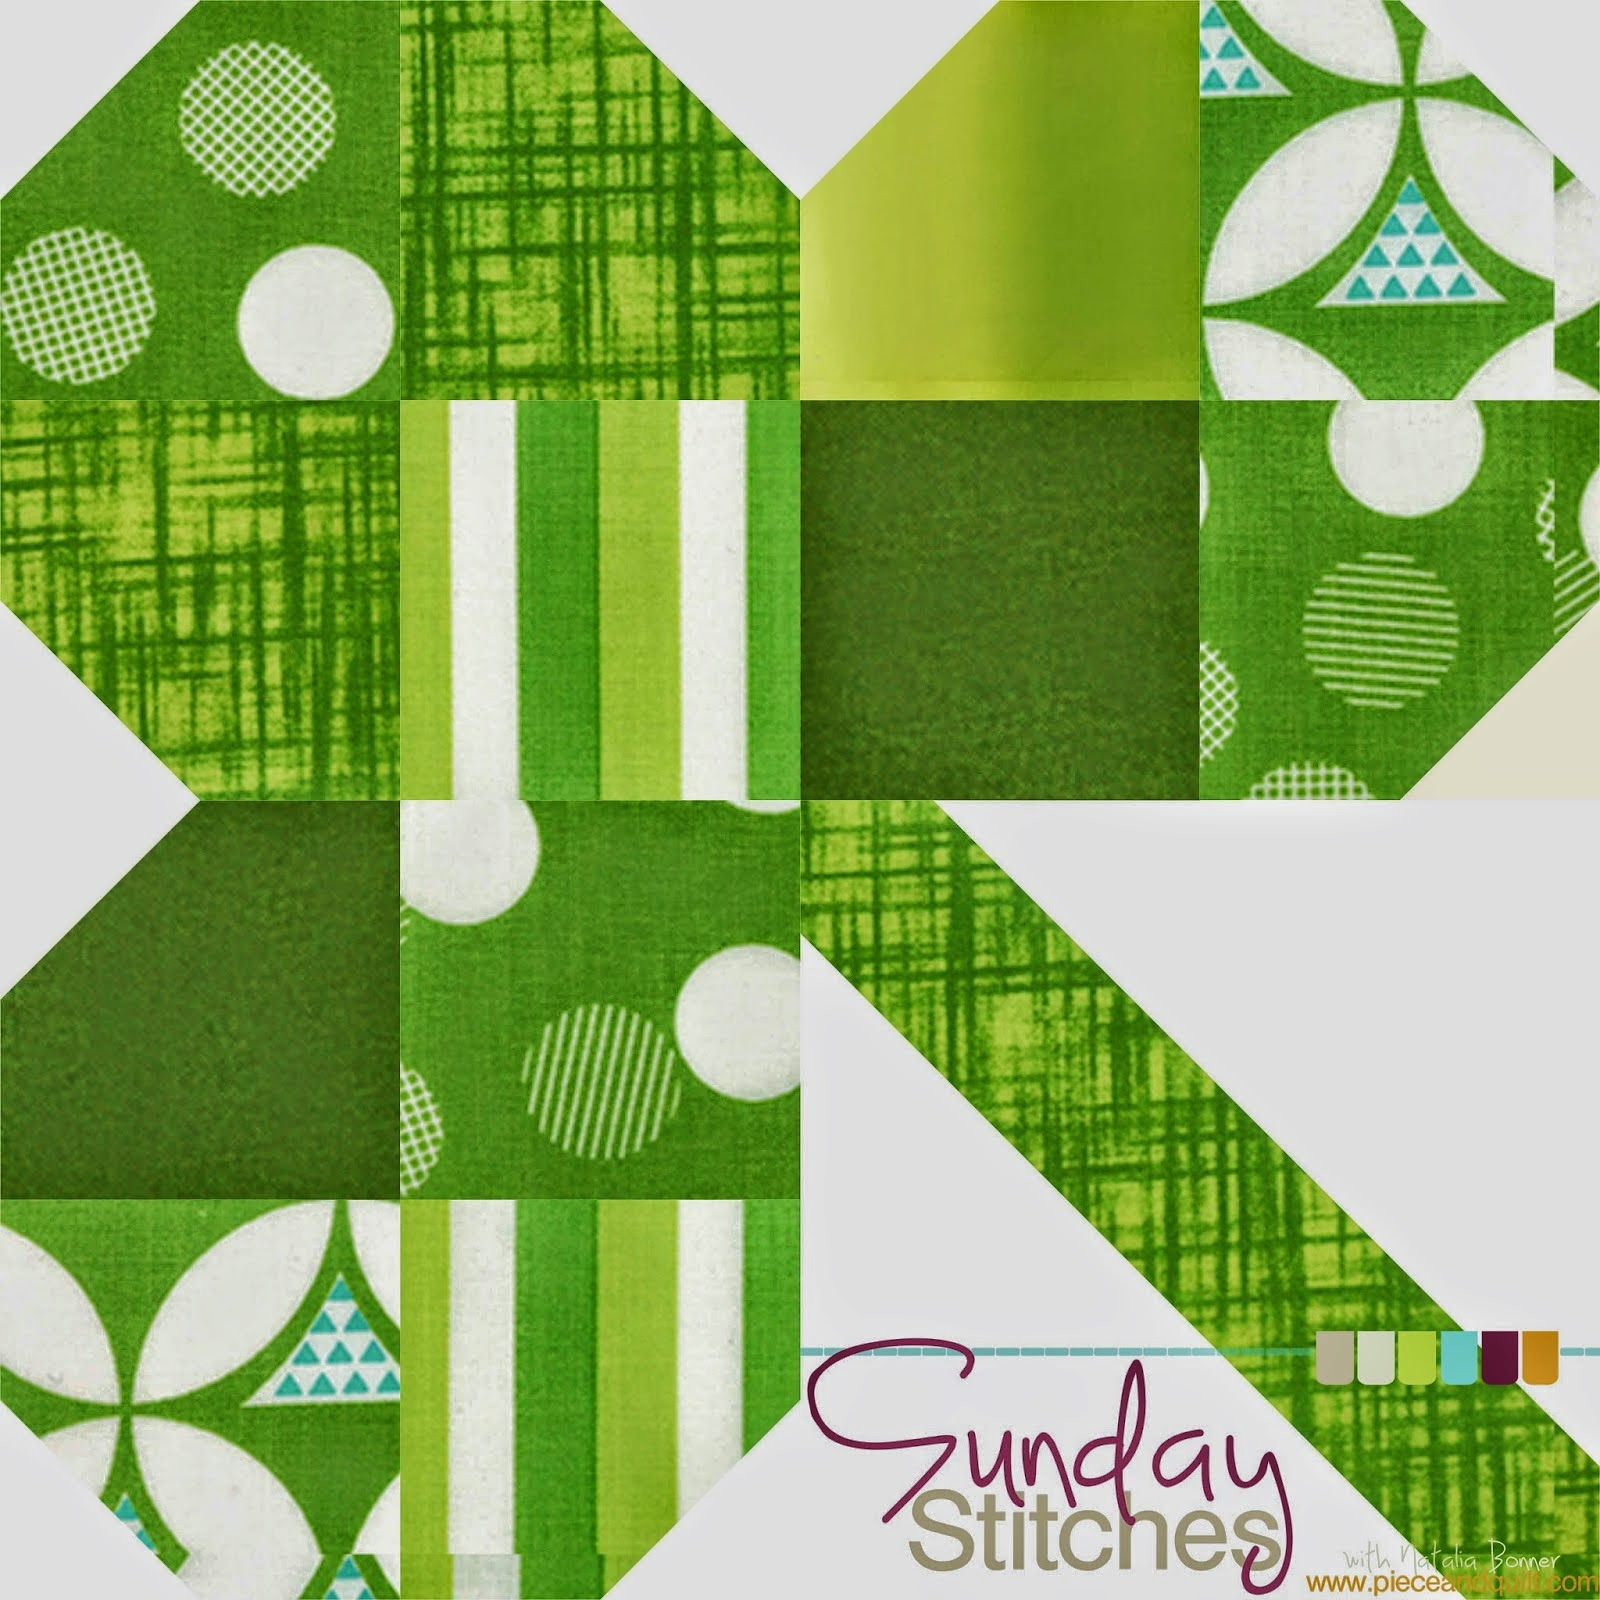 http://www.pieceandquilt.com/2015/02/how-to-clover-quilt-block-tutorial.html